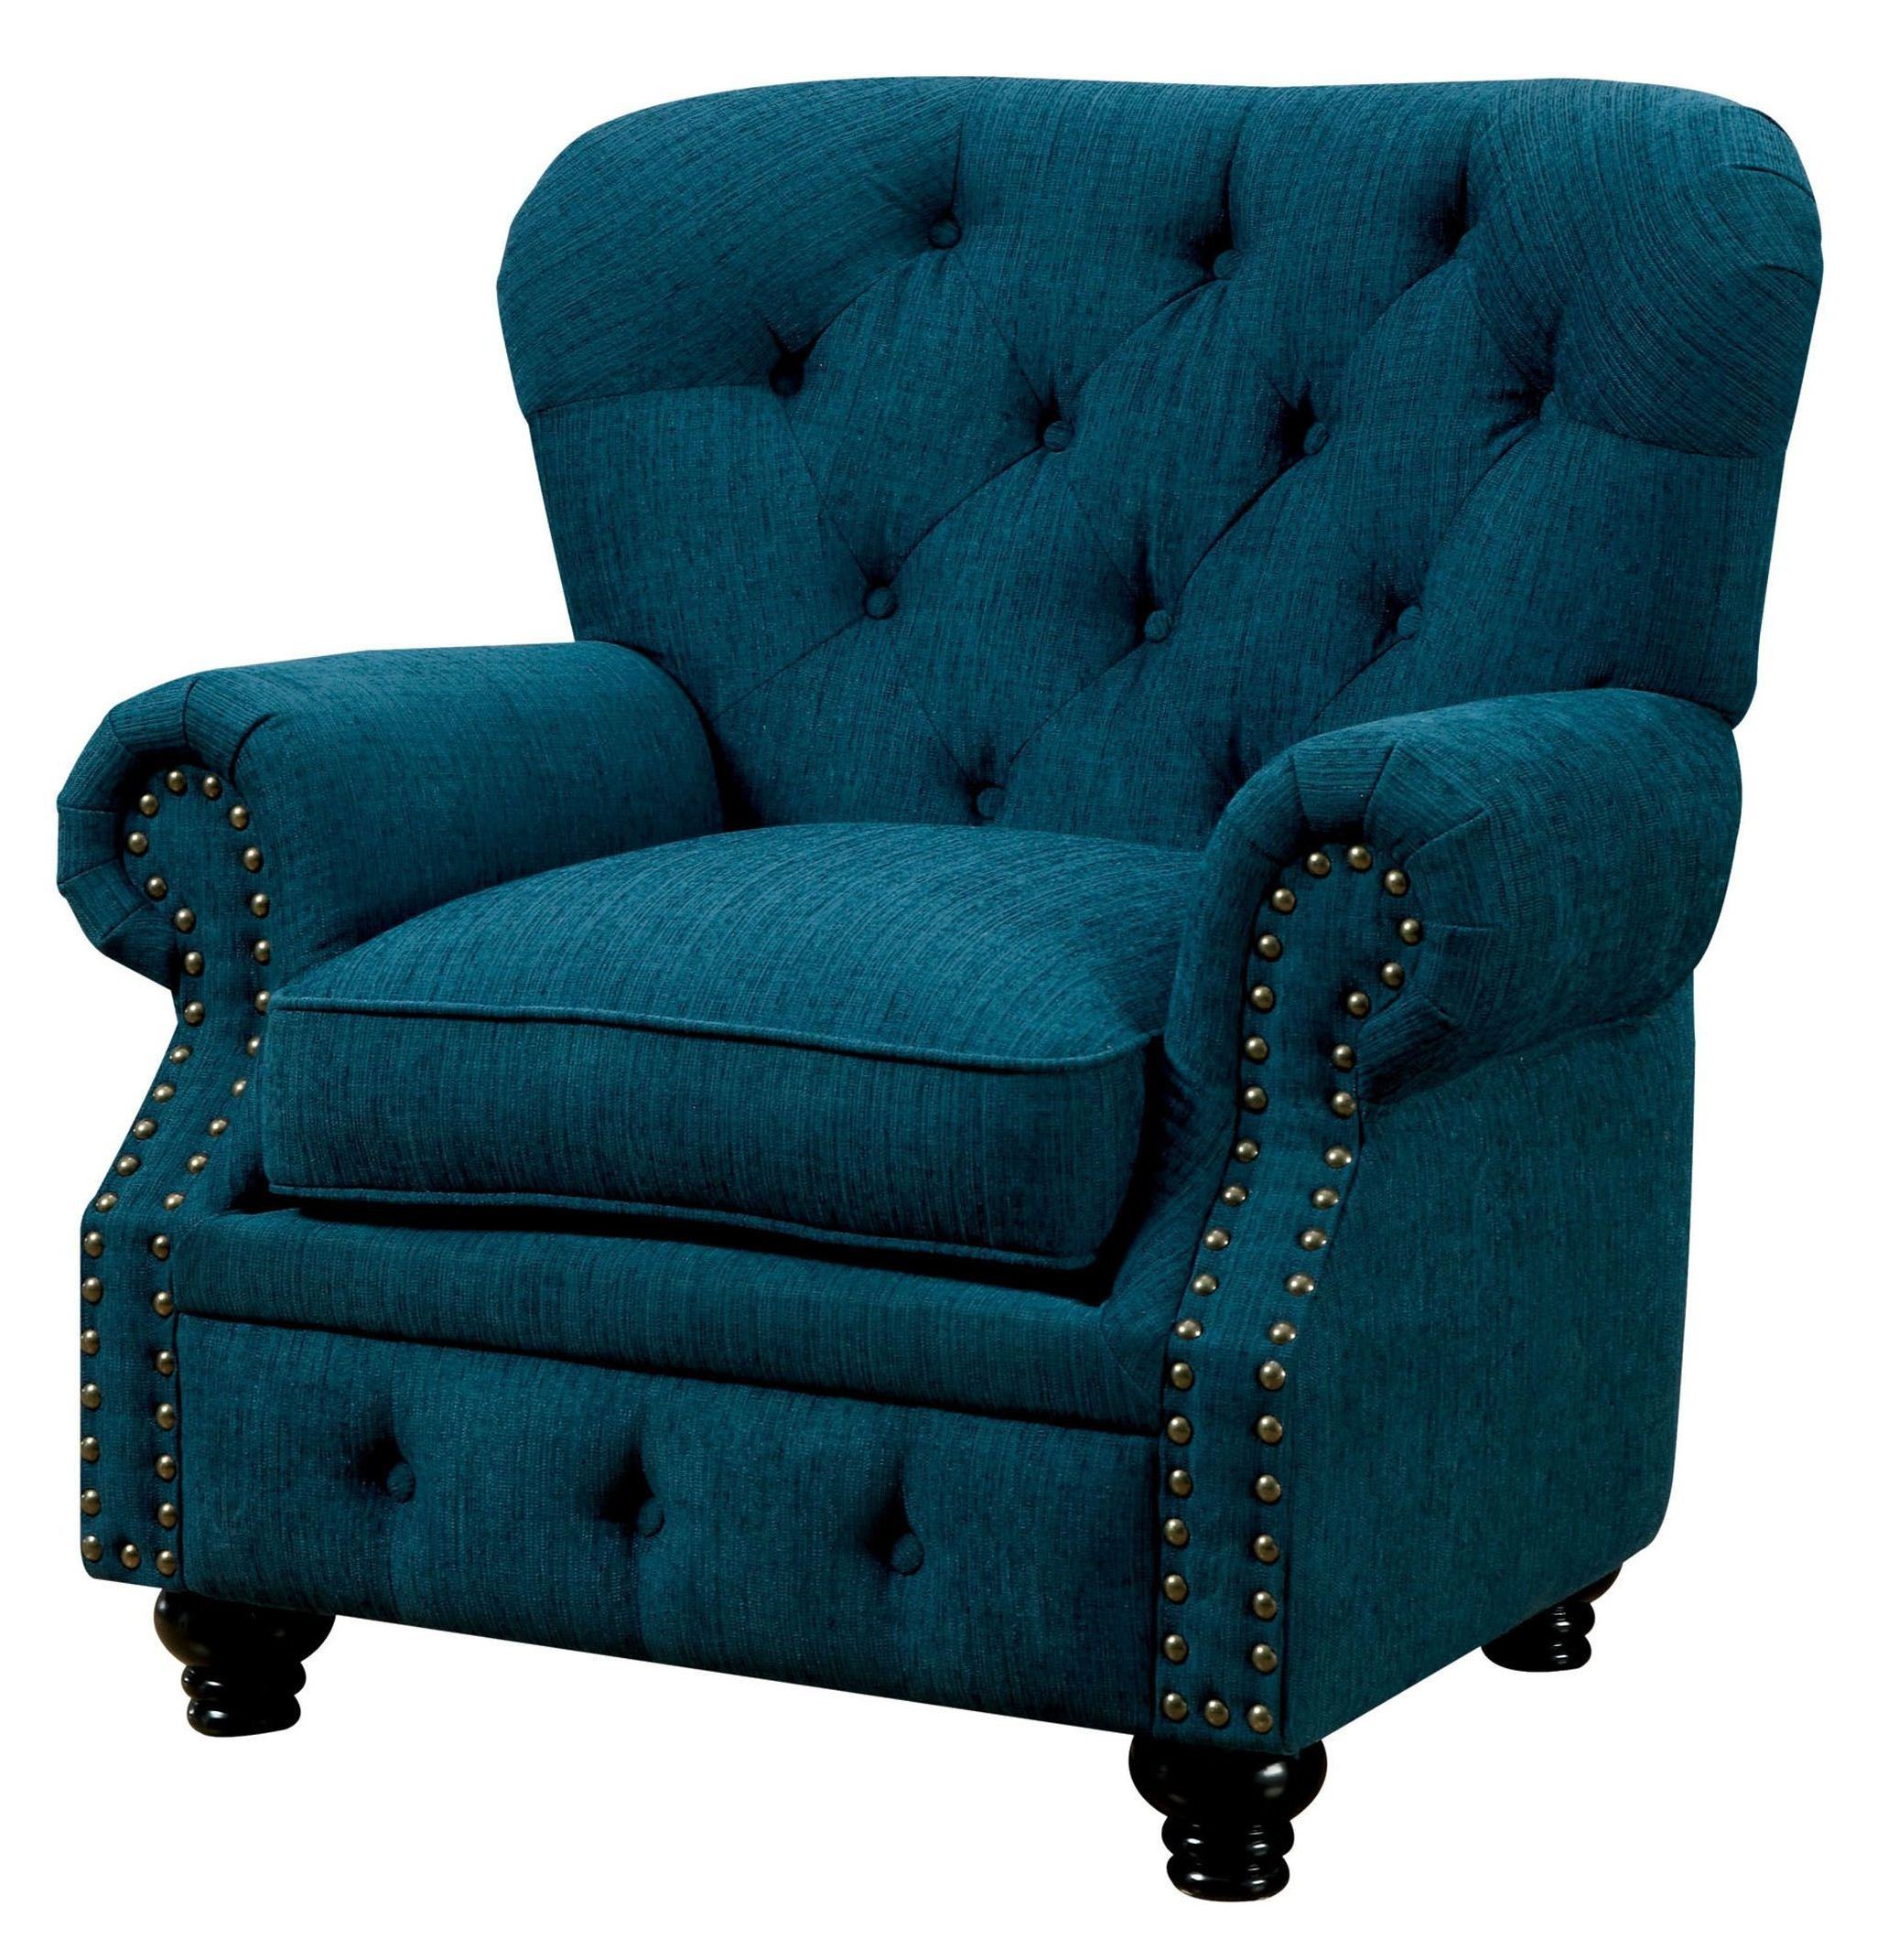 Teal Chair Stanford Dark Teal Fabric Chair From Furniture Of America